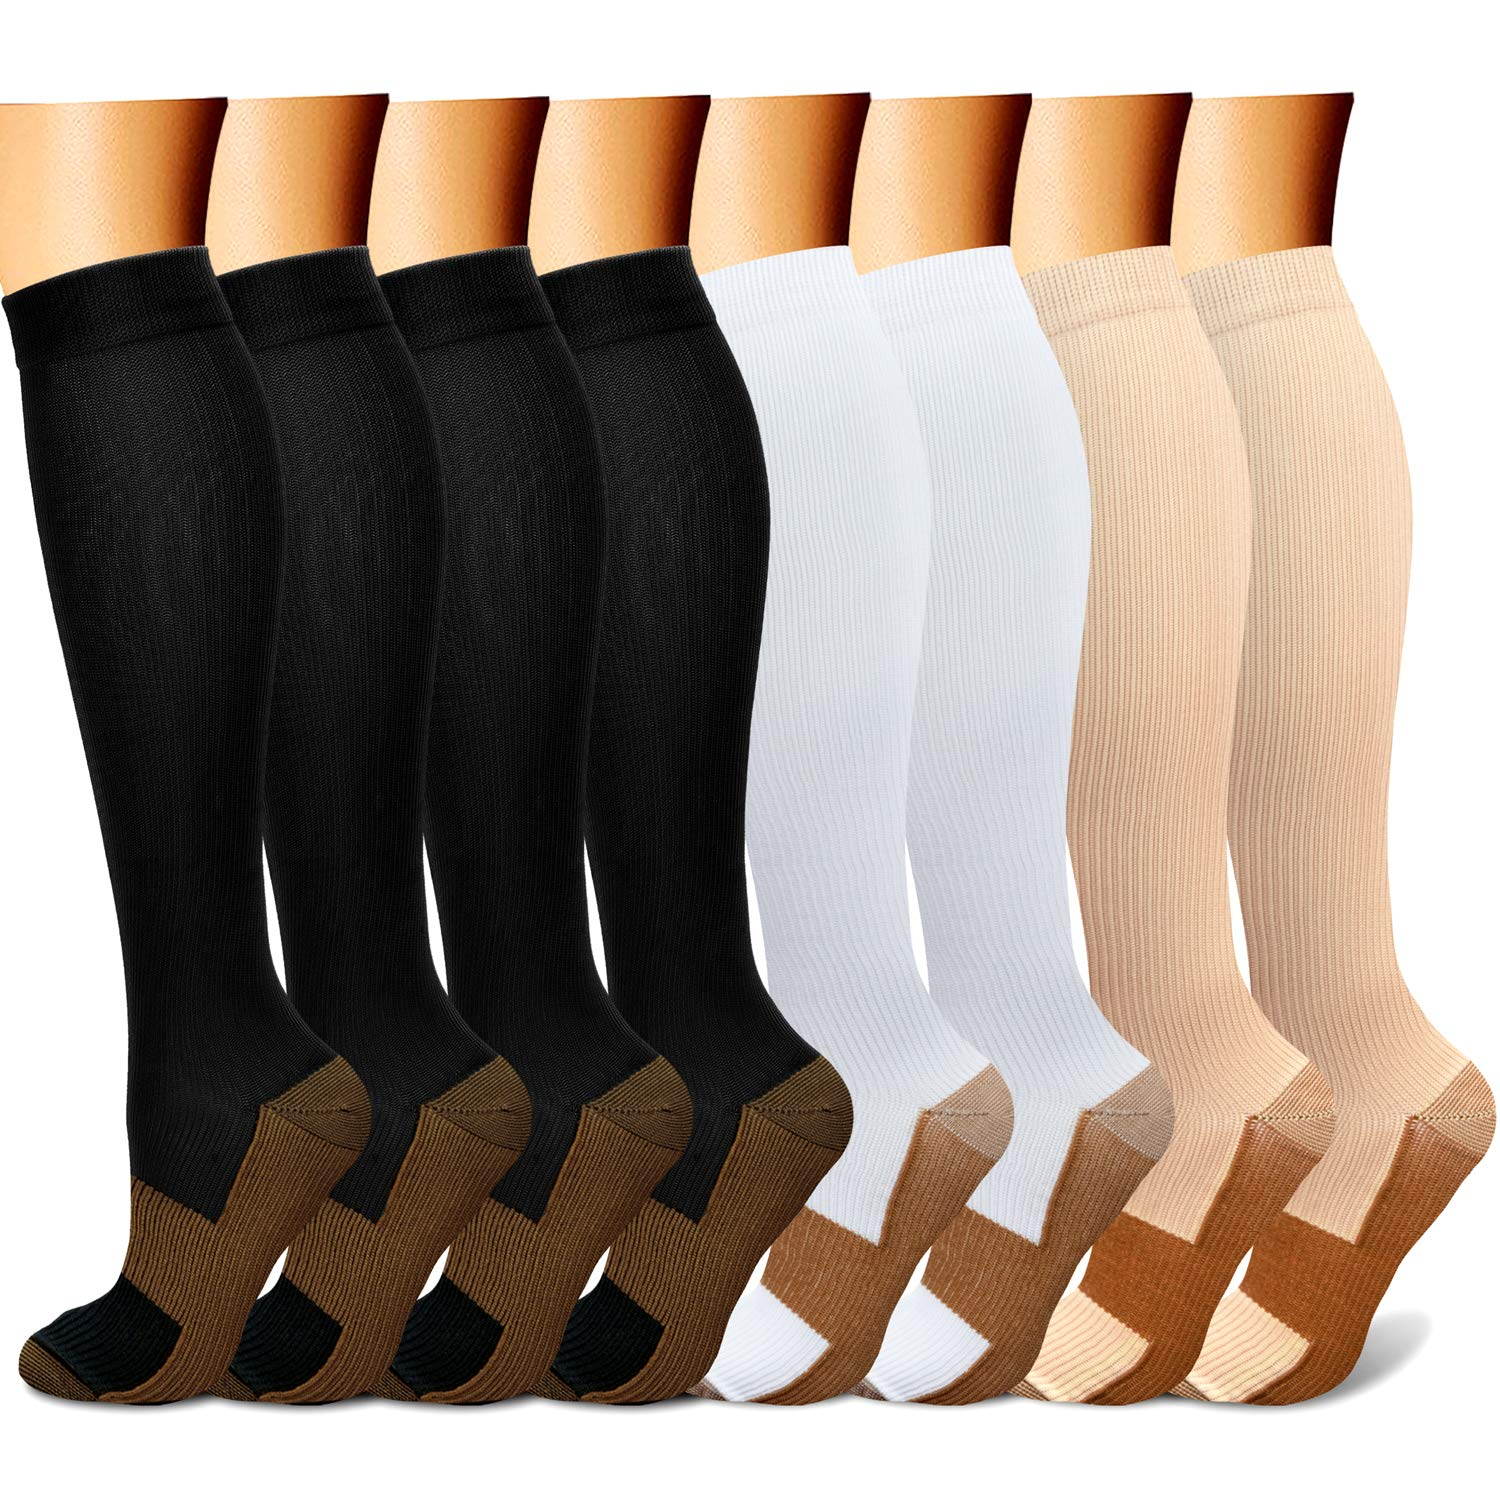 QUXIANG Copper Compression Socks for Women and Men - Best Medical Sports, Nursing, Running, Cycling, Athletic, Edema, Diabetic, Varicose Veins, Travel, Pregnancy & Maternity 15-20 mmHg (S/M, Multi 18)